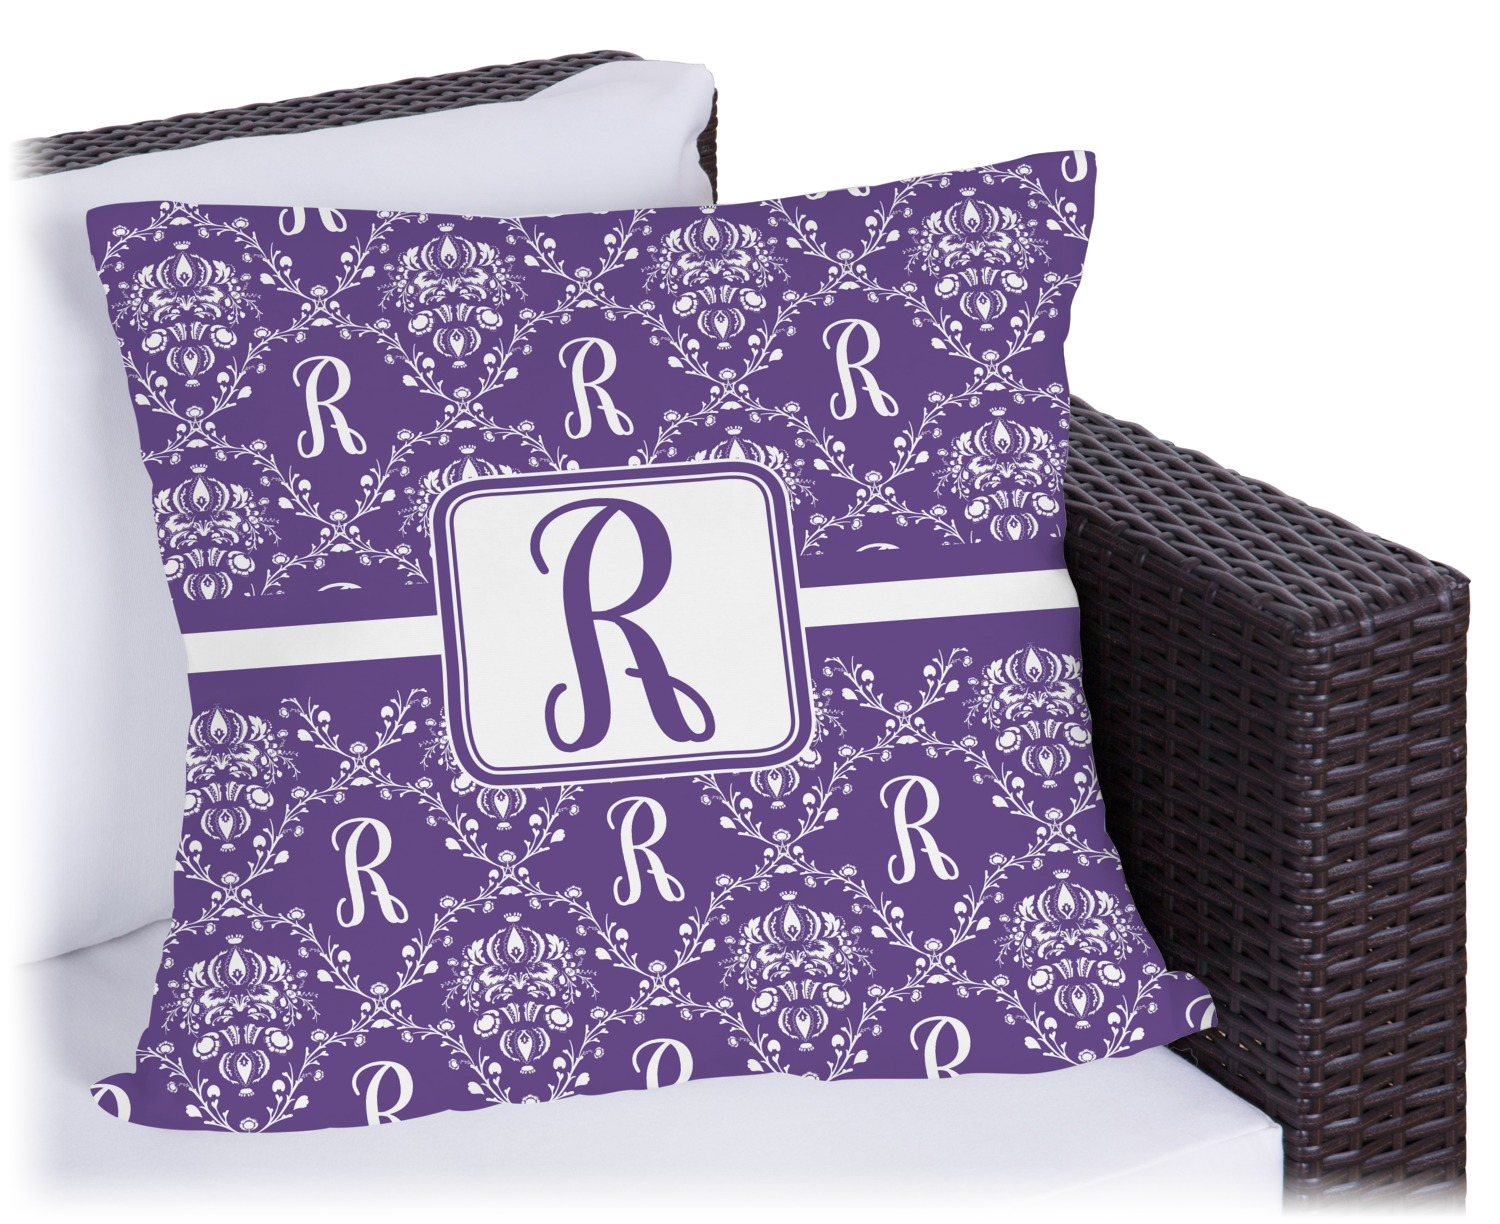 Initial Damask Outdoor Pillow - 18